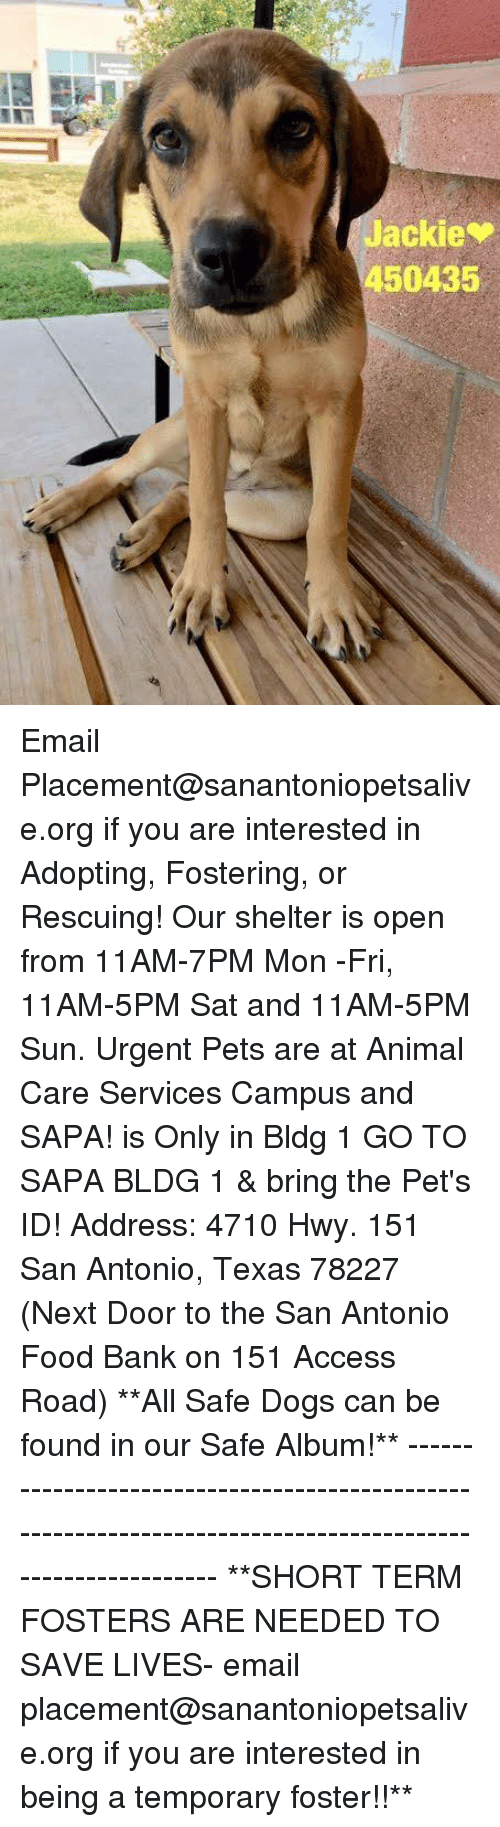 bringed: Jackie  450435 Email Placement@sanantoniopetsalive.org if you are interested in Adopting, Fostering, or Rescuing!  Our shelter is open from 11AM-7PM Mon -Fri, 11AM-5PM Sat and 11AM-5PM Sun.  Urgent Pets are at Animal Care Services Campus and SAPA! is Only in Bldg 1 GO TO SAPA BLDG 1 & bring the Pet's ID! Address: 4710 Hwy. 151 San Antonio, Texas 78227 (Next Door to the San Antonio Food Bank on 151 Access Road)  **All Safe Dogs can be found in our Safe Album!** ---------------------------------------------------------------------------------------------------------- **SHORT TERM FOSTERS ARE NEEDED TO SAVE LIVES- email placement@sanantoniopetsalive.org if you are interested in being a temporary foster!!**